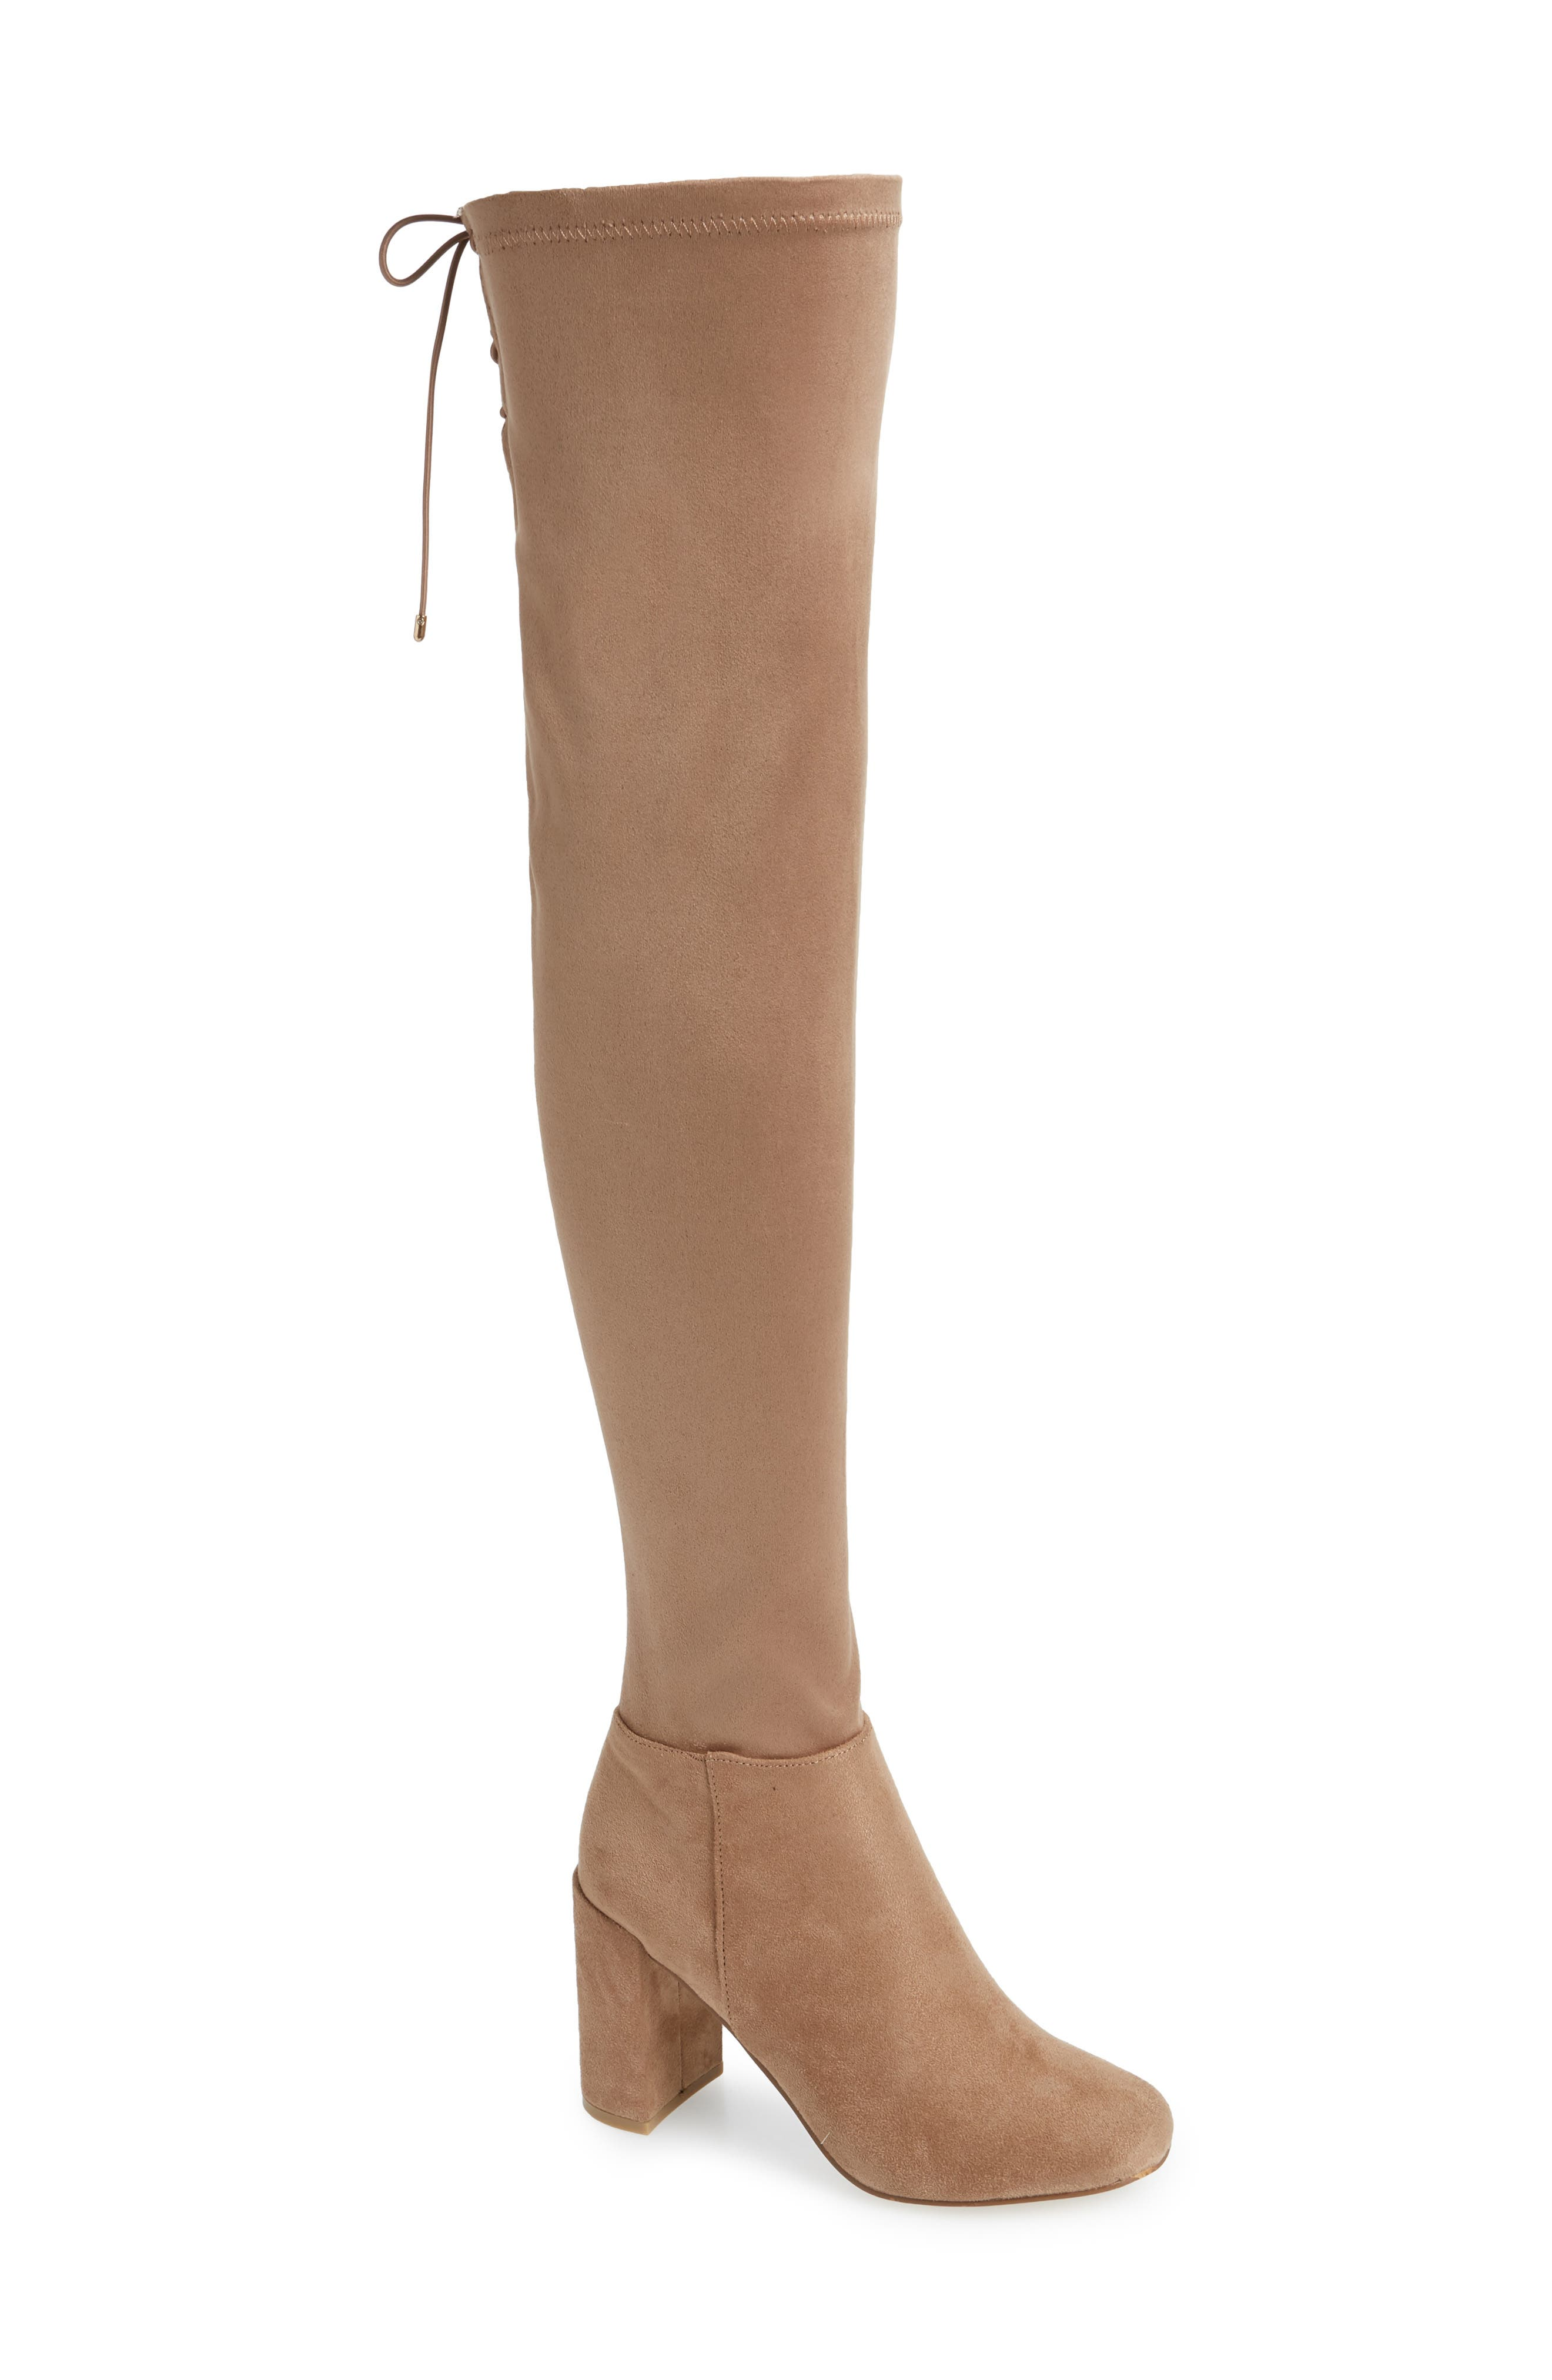 King Over the Knee Boot,                         Main,                         color, MINK